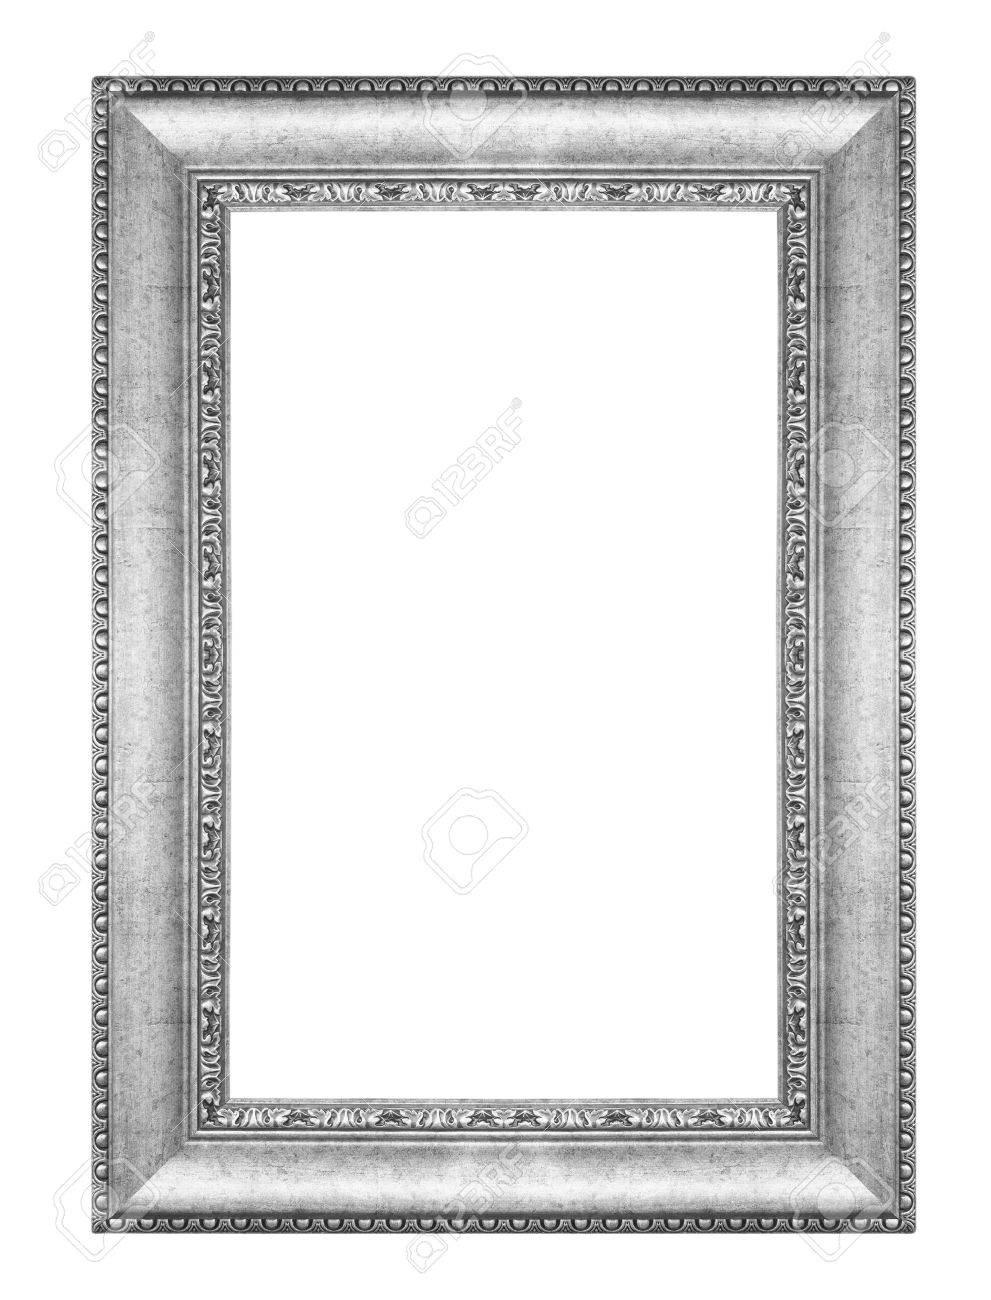 stock photo old antique vintage silver frames isolated on white background